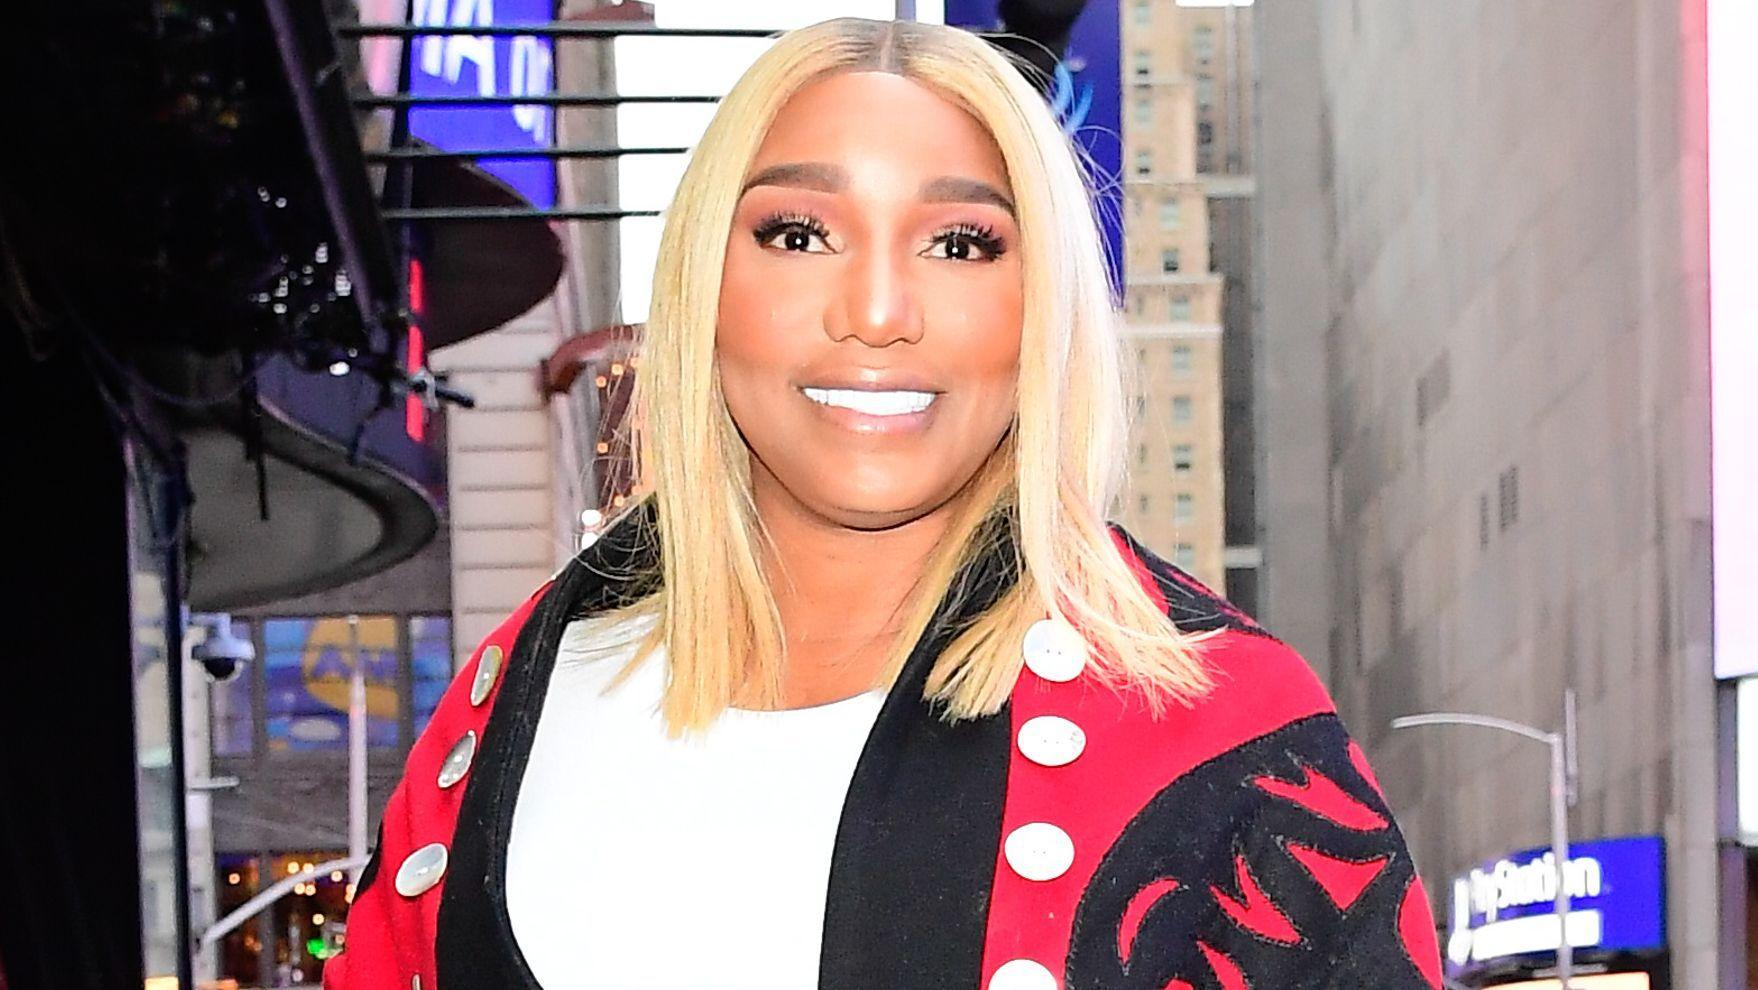 NeNe Leakes Shows Off Her Dark Roots - Check Out Her Photo